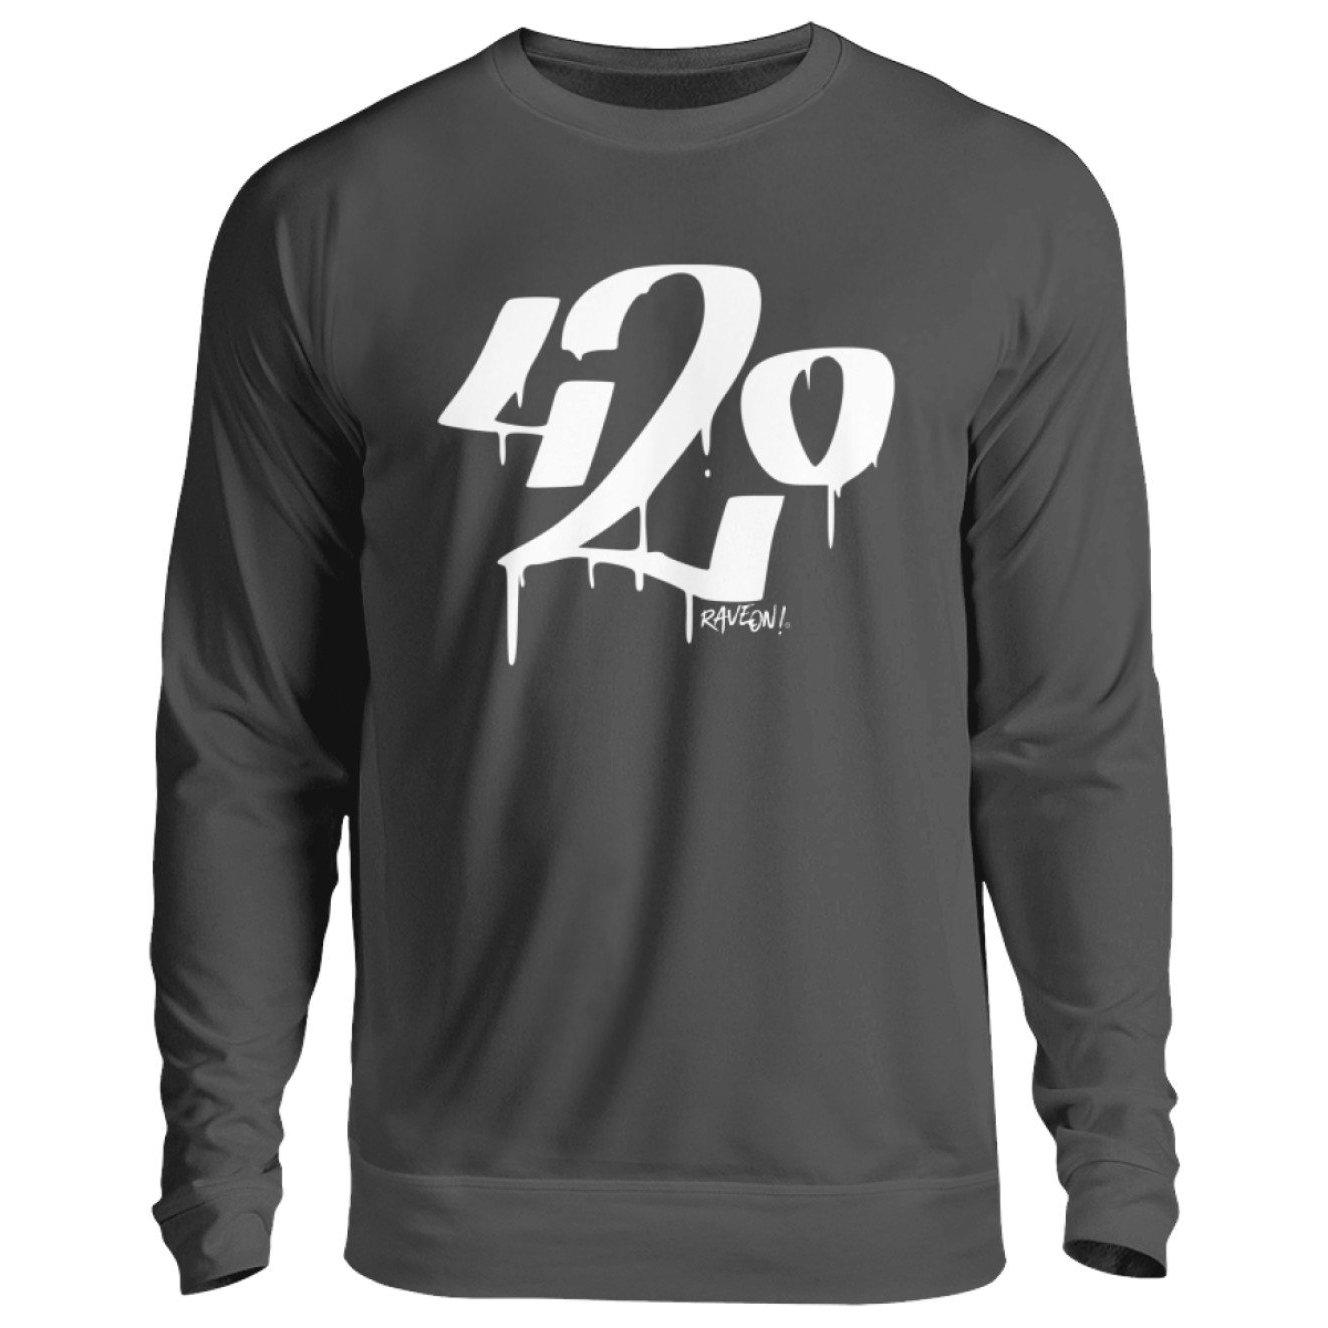 Graffiti 420 - Rave On!® - Unisex Pullover Unisex Sweatshirt Storm Grey (Solid) / S - Rave On!® der Club & Techno Szene Shop für Coole Junge Mode Streetwear Style & Fashion Outfits + Sexy Festival 420 Stuff